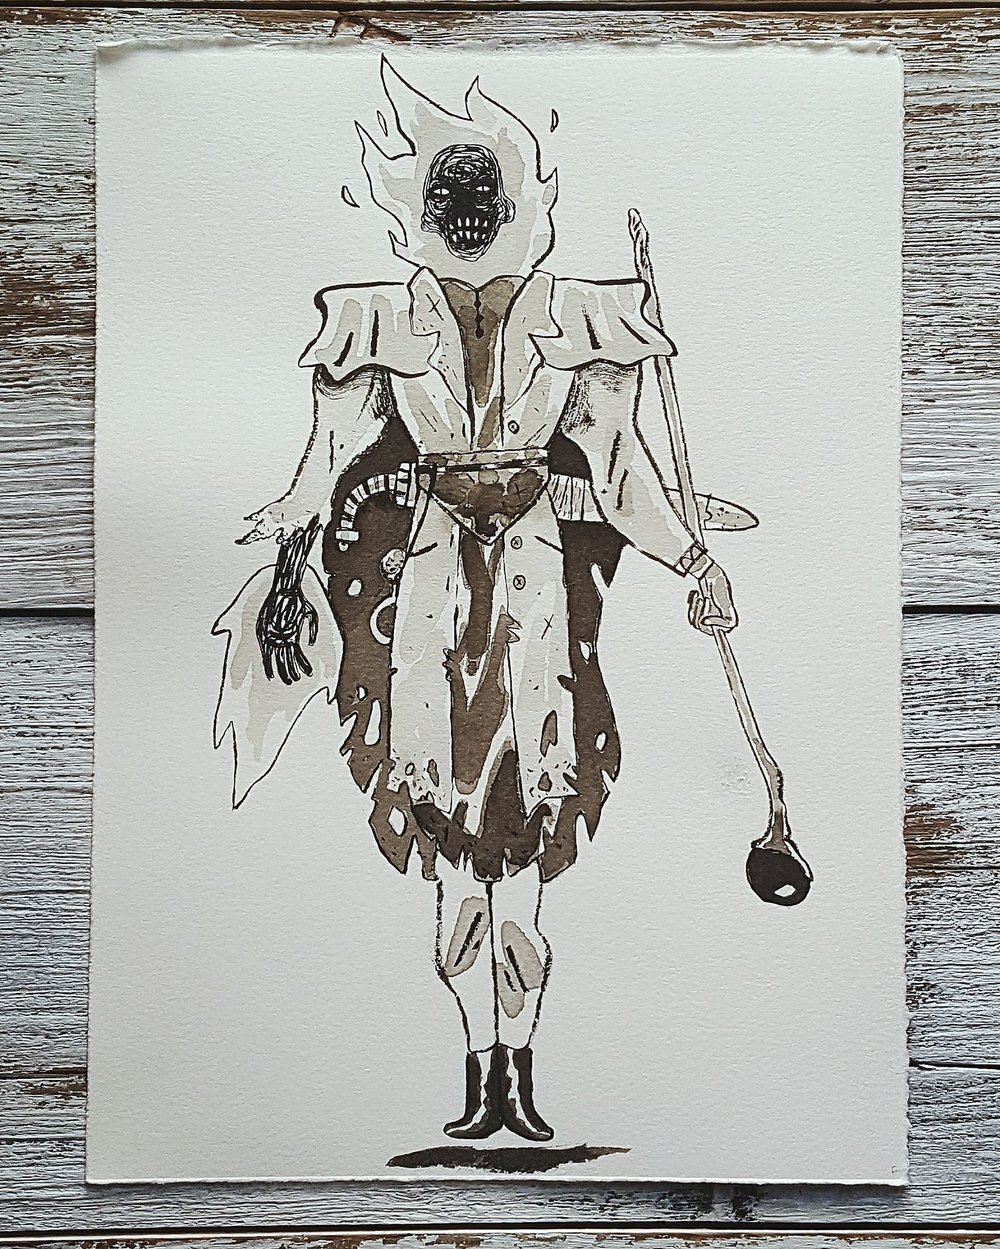 A Knight a Day No. 11, Pyromancer - An adventurer who augmented his body with a magical red stone. After the flames swallowed him, his charred body rose again as a powerful fire mage.